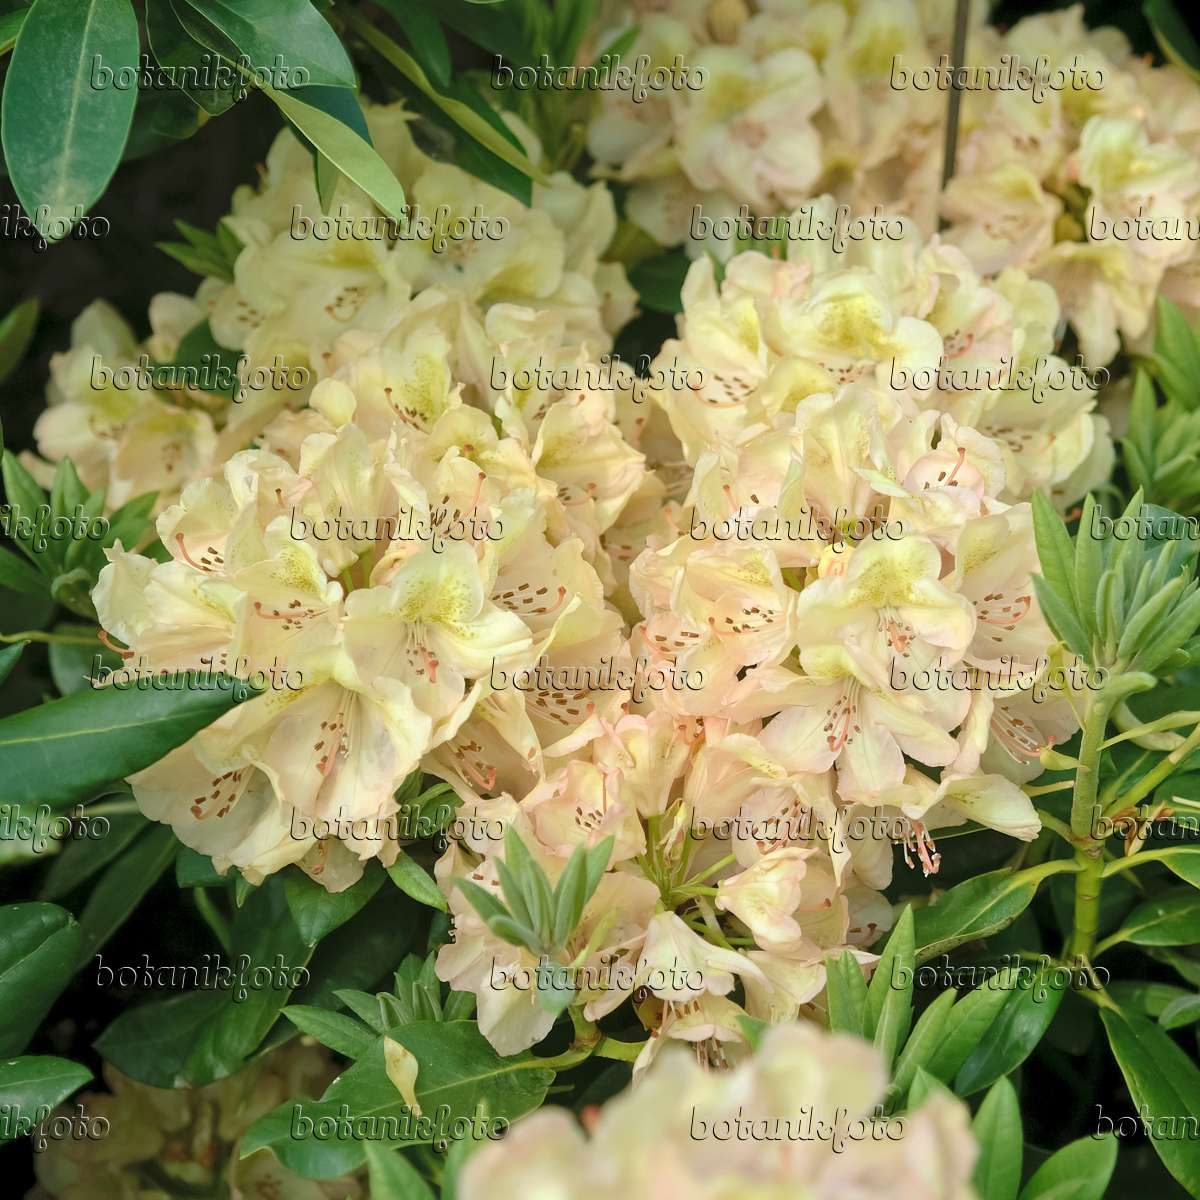 Images Rhododendrons Images And Videos Of Plants And Gardens